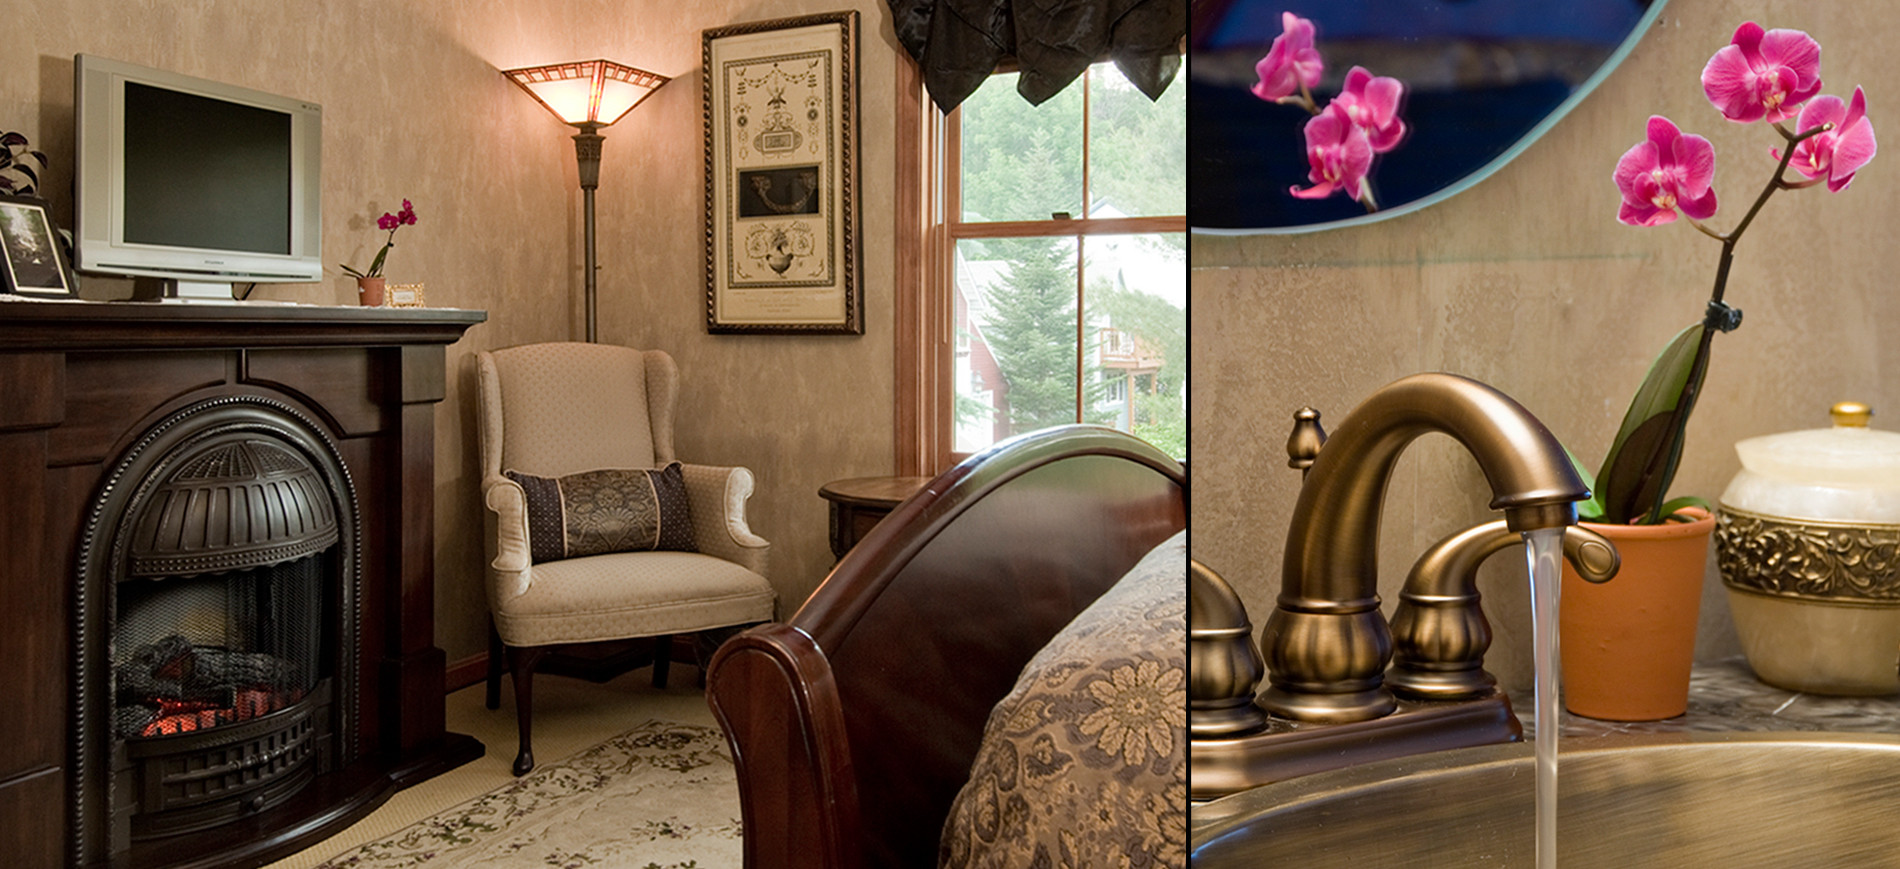 Guest room with victorian fireplace, wing chair & lamp, windows, queen sleigh bed, closeup of sink with running water & orchid plant